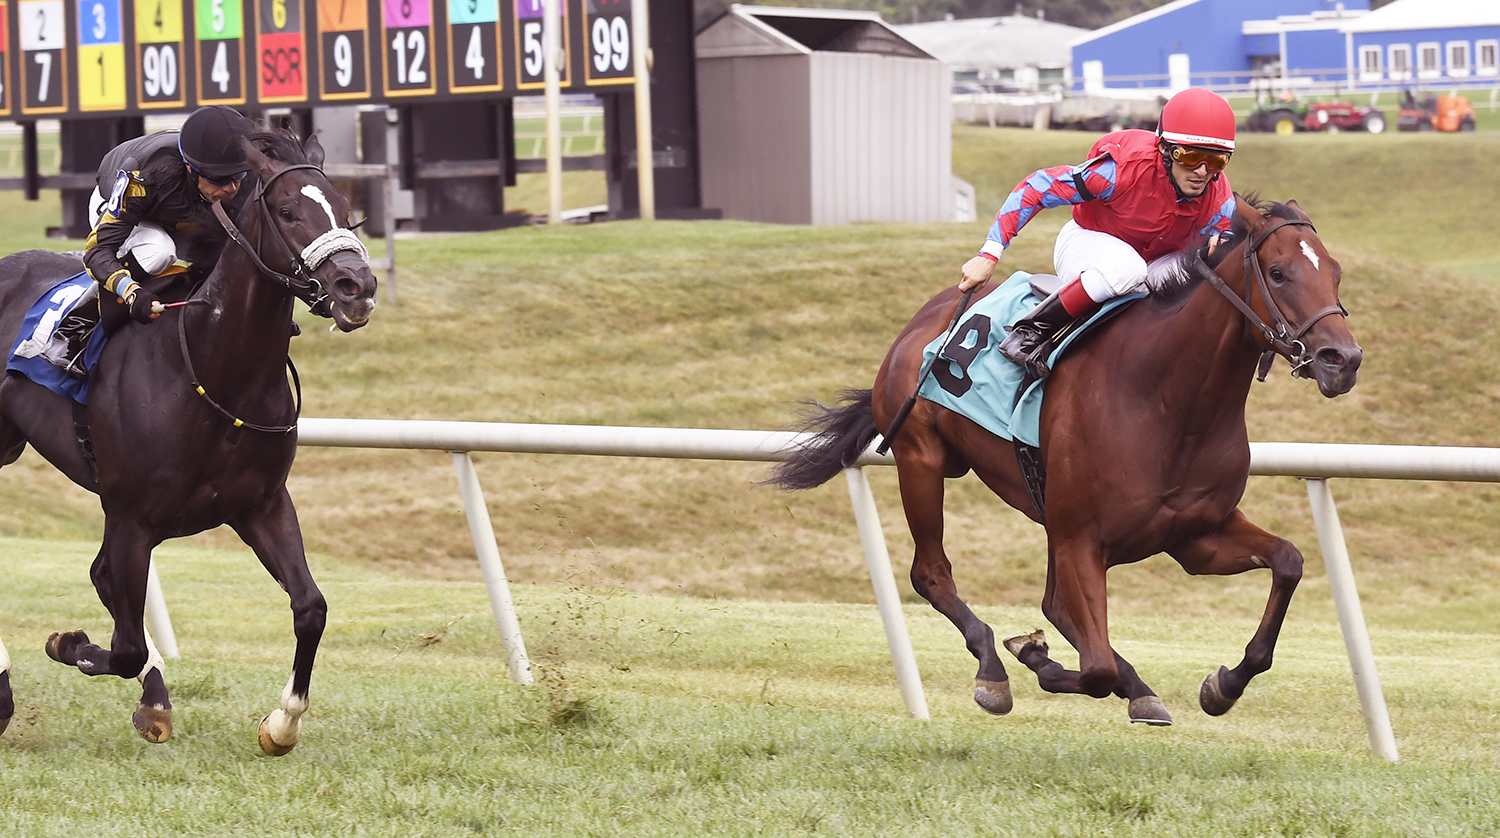 Lime House Louie, bred  by Carlos Moore & Gillian Gordon-Moore, won the Jamestrown Stakes for 2 year olds at Laurel Saturday. Gabriel Saez guided the effort up top. Photo by Jim McCue.